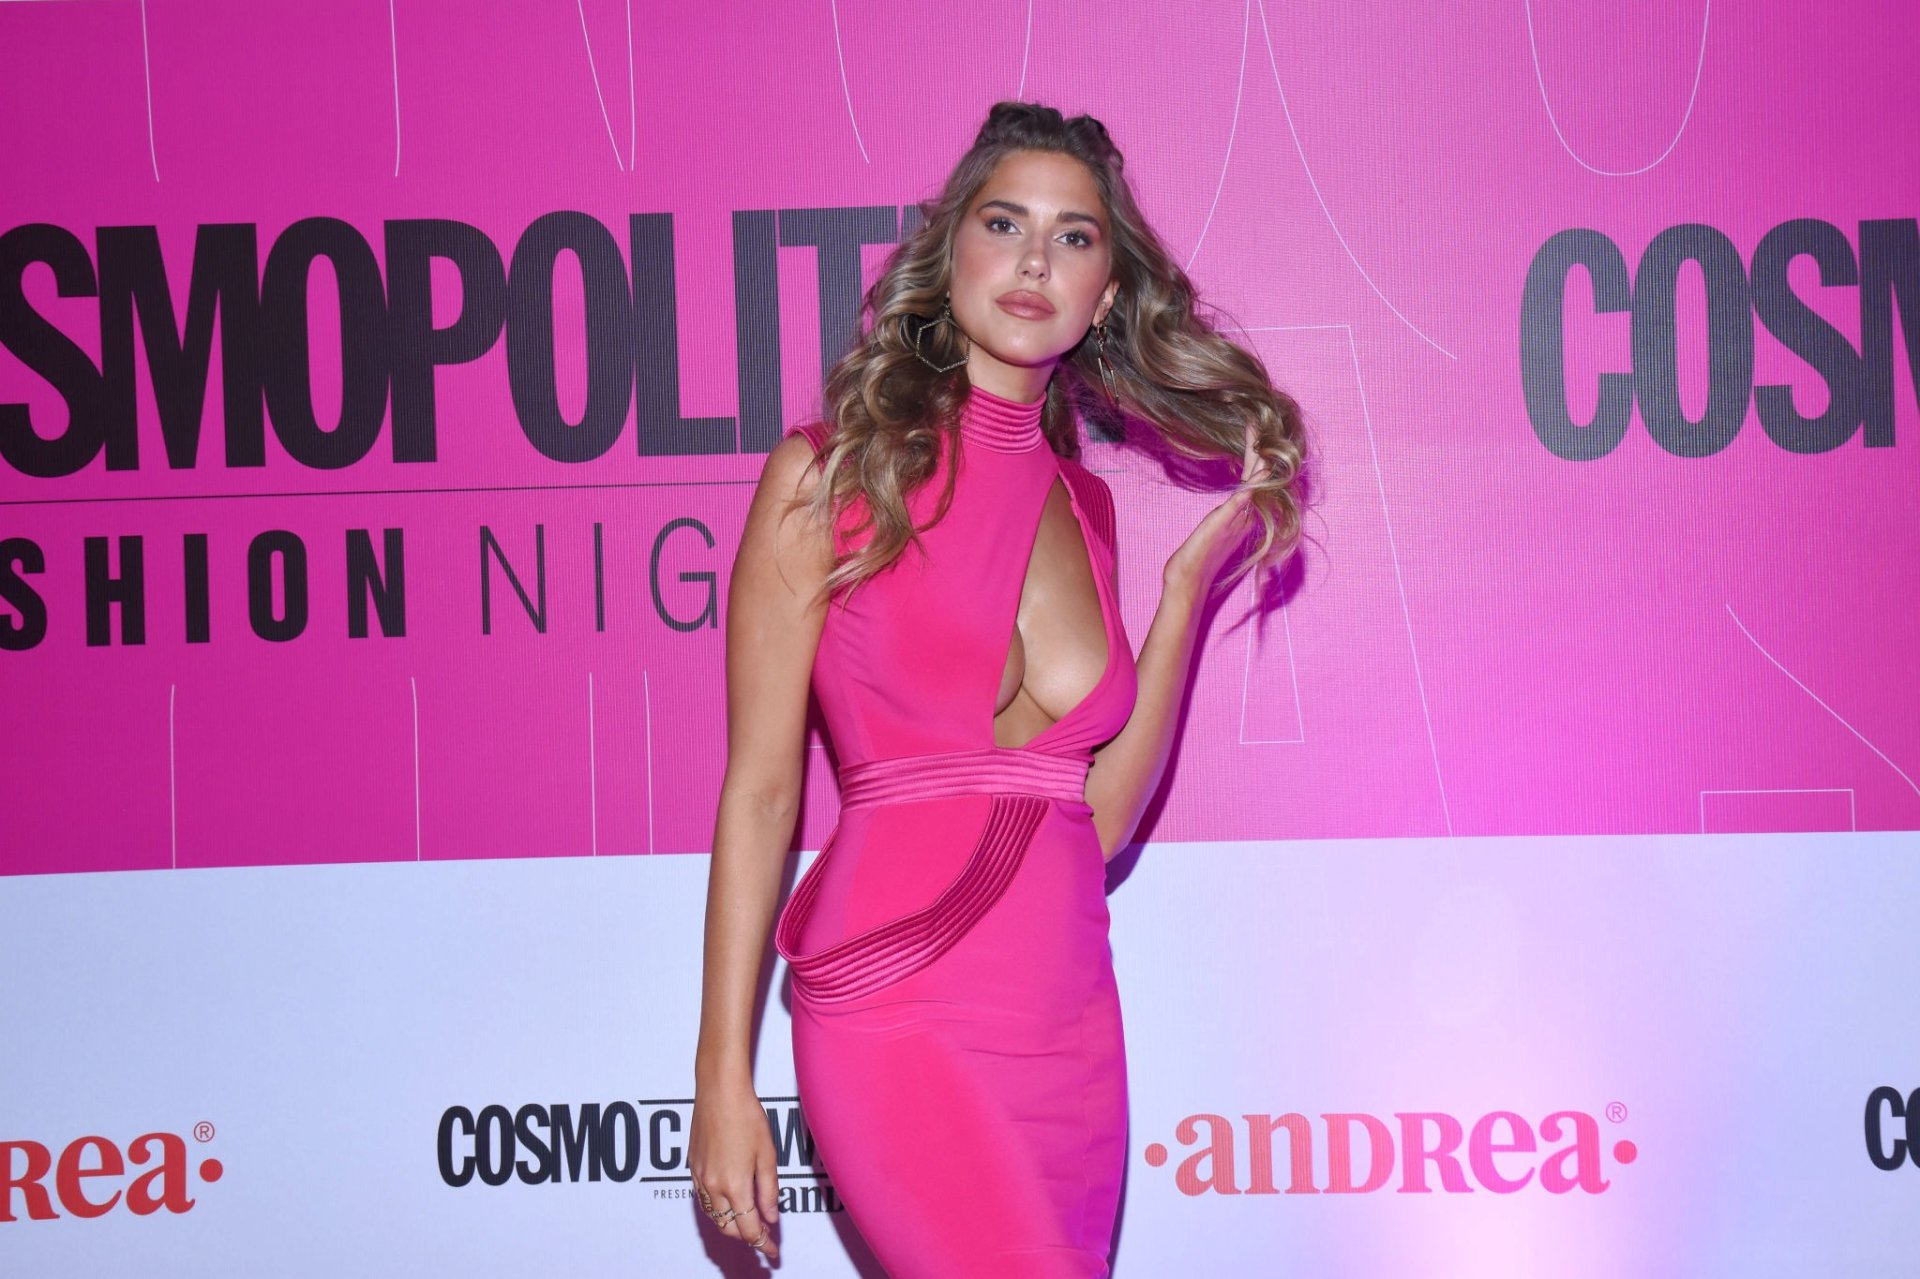 Kara Del Toro – Cosmopolitan Fashion Night in Mexico City